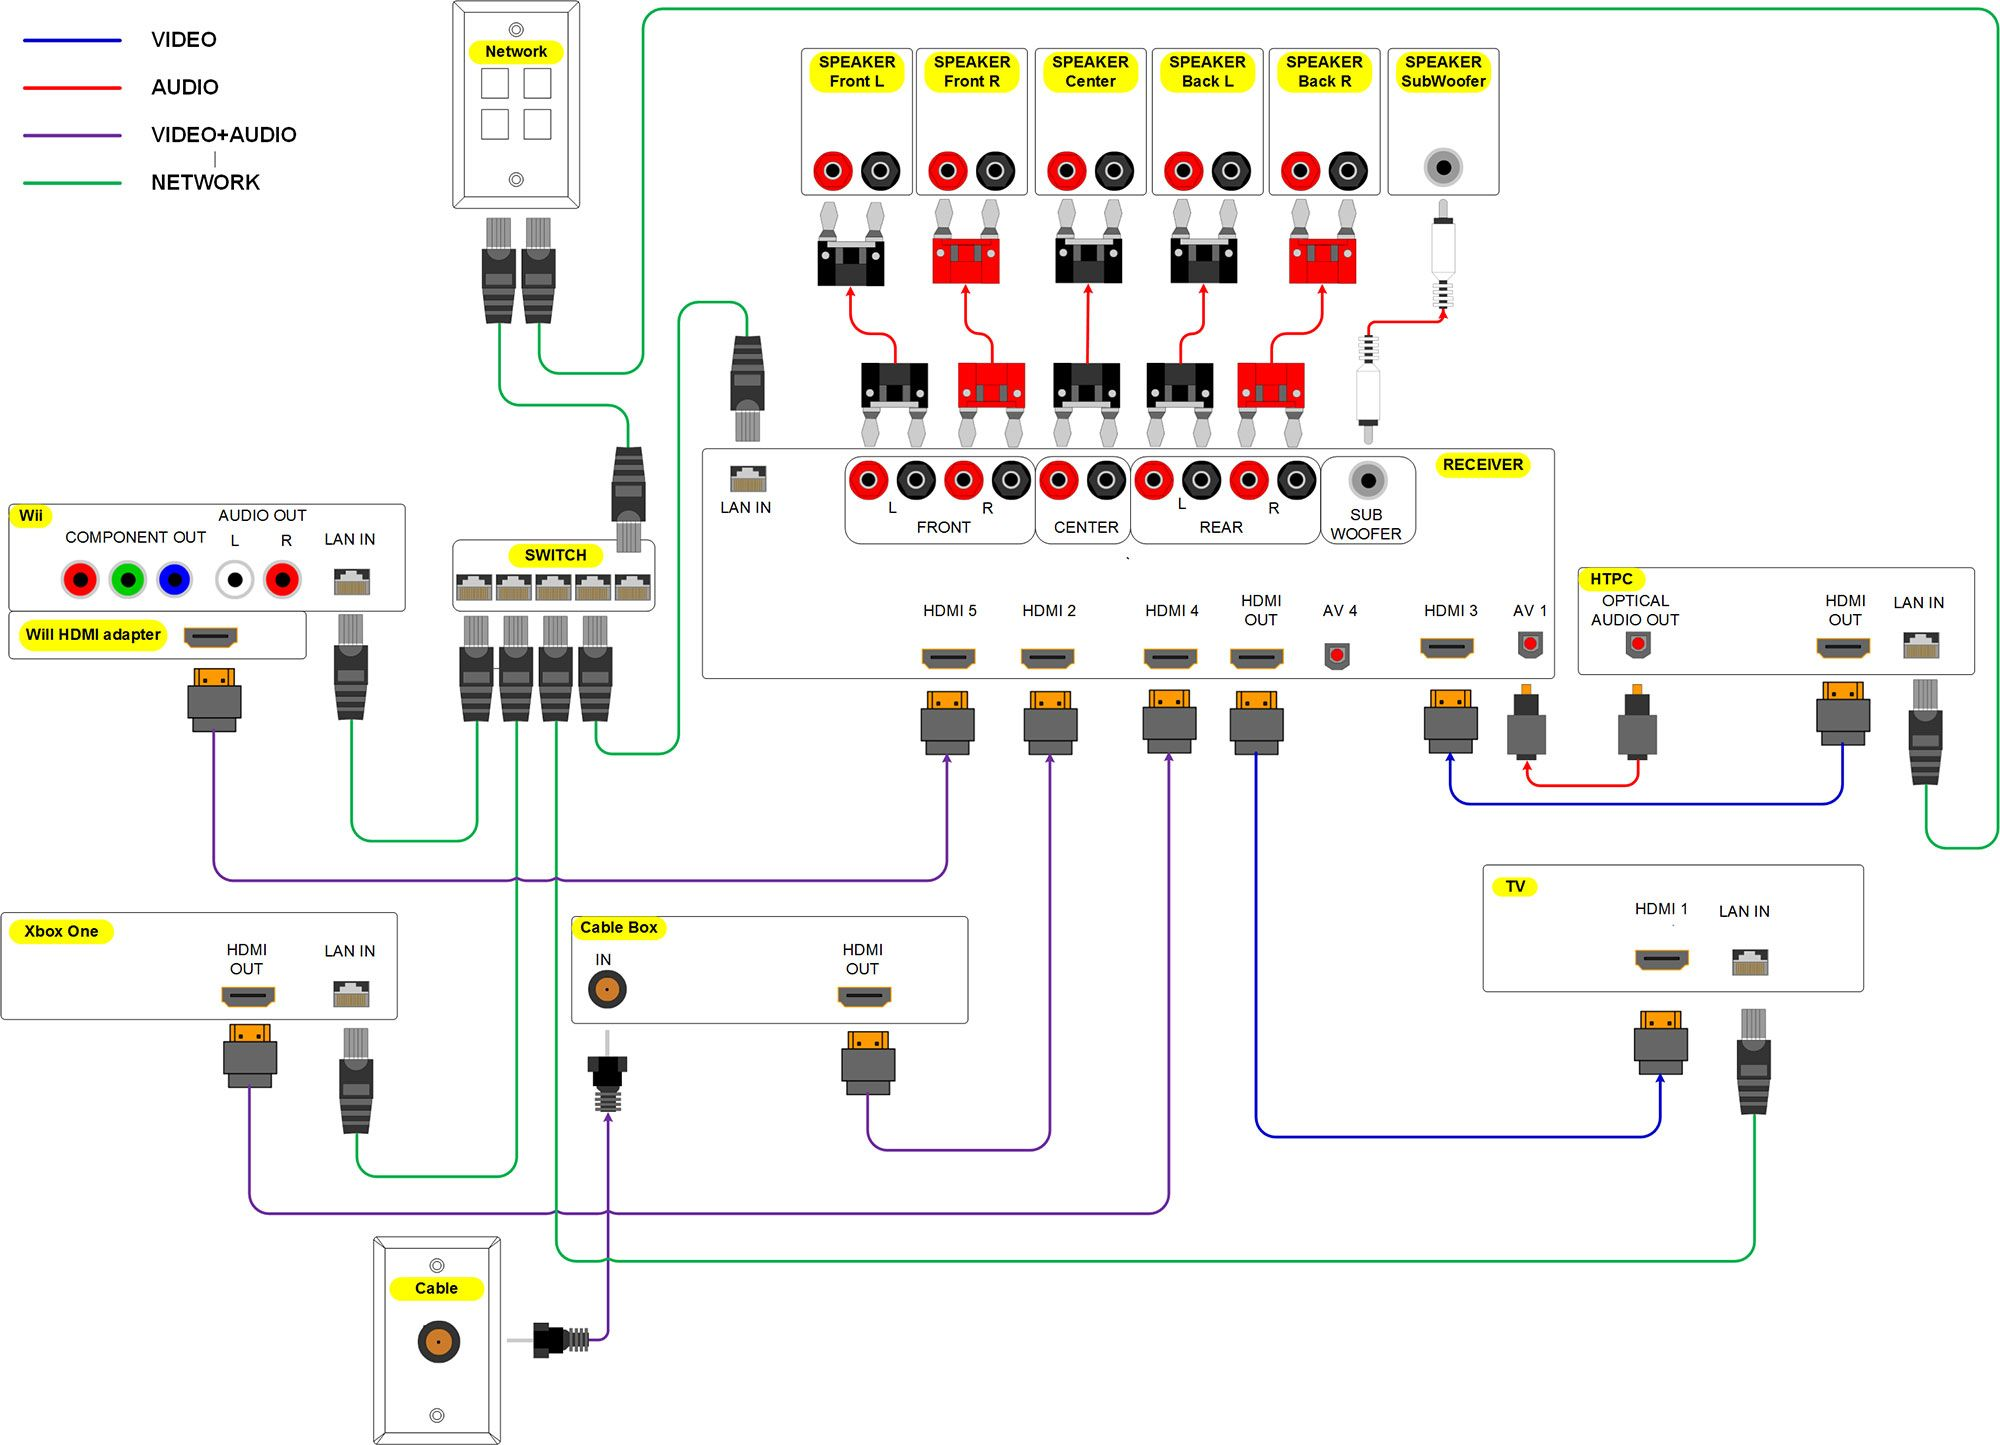 home theater wiring diagram click it to see the big 2000 pixel wide rh pinterest com wiring diagram for home theater system electric wiring for a home theater